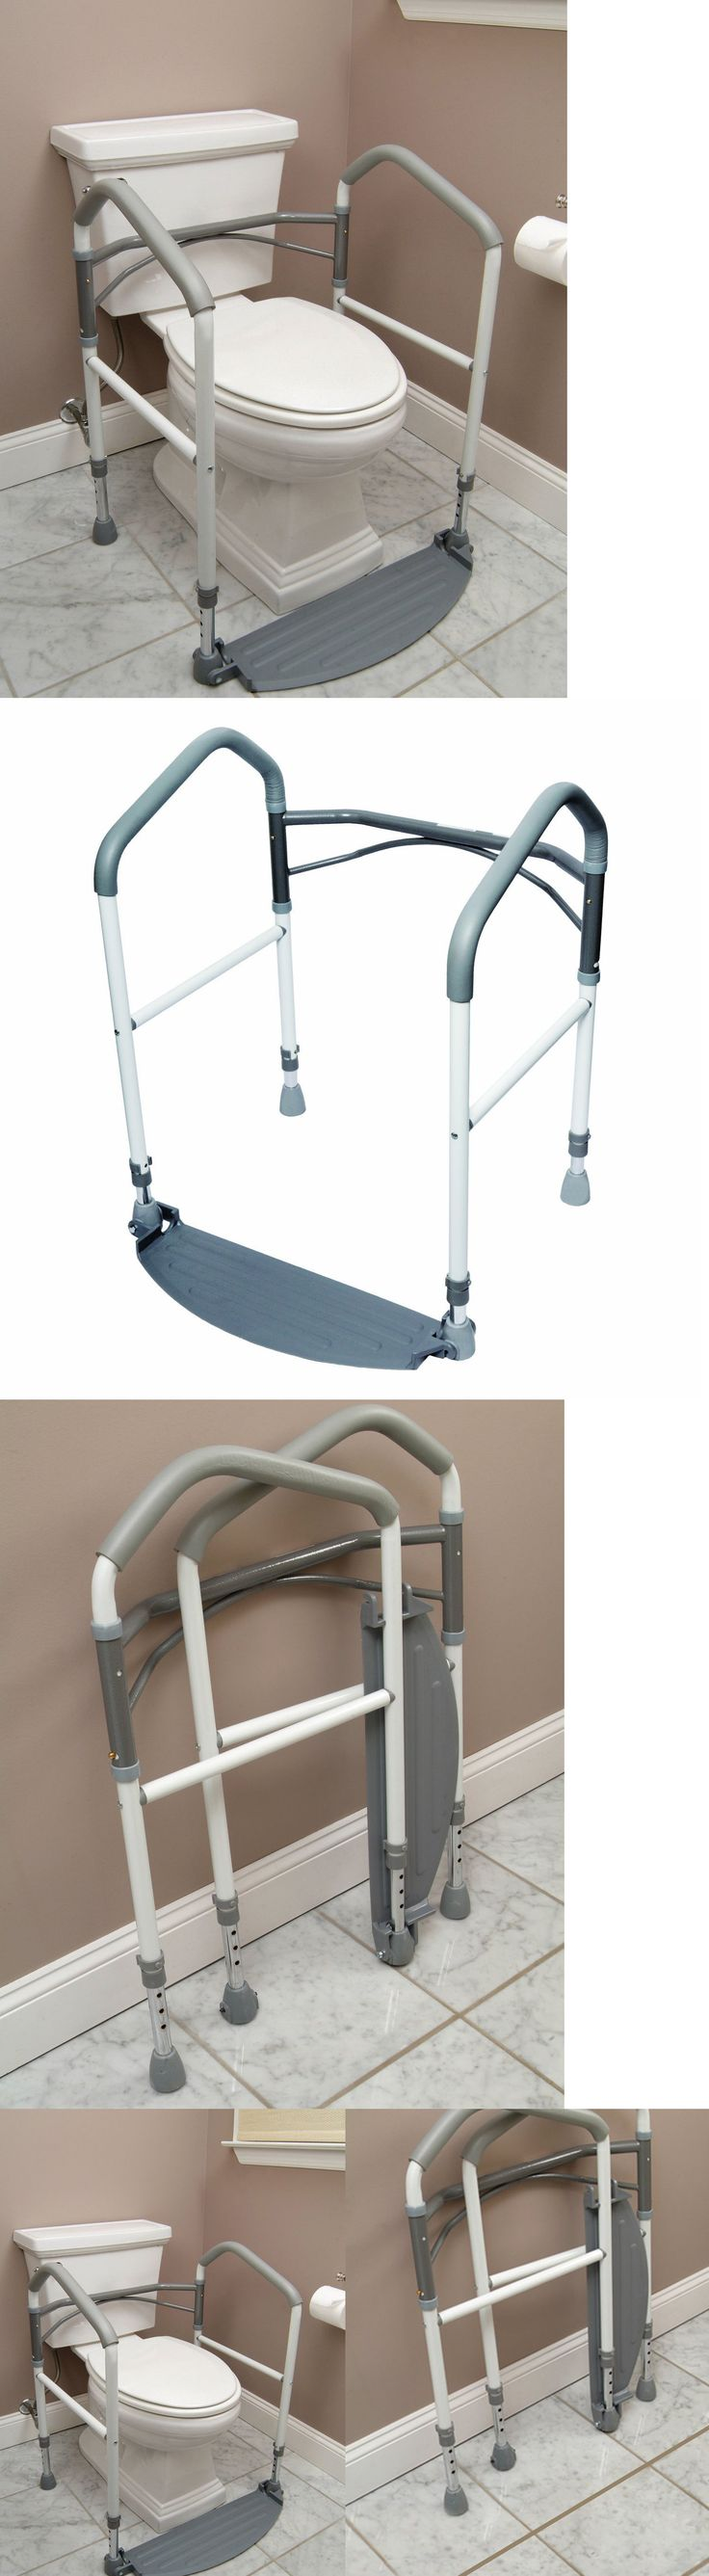 Handles and Rails: Toilet Surround Support Safety Frame Elderly Mobility Aid Portable Grab Bar Rail BUY IT NOW ONLY: $114.8